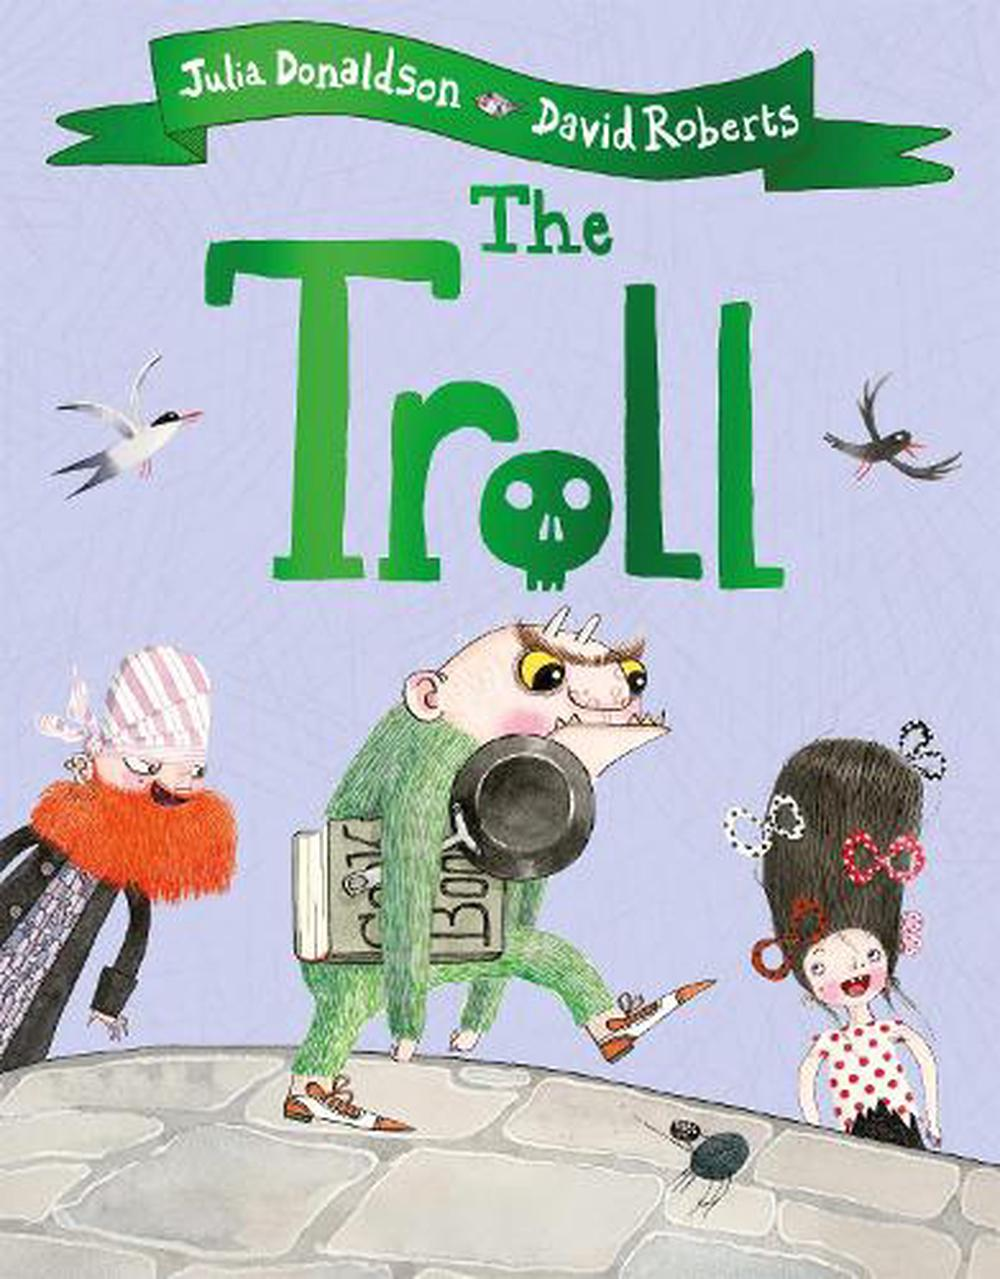 Troll by Julia Donaldson, Paperback, 9781509892426 | Buy online at The Nile